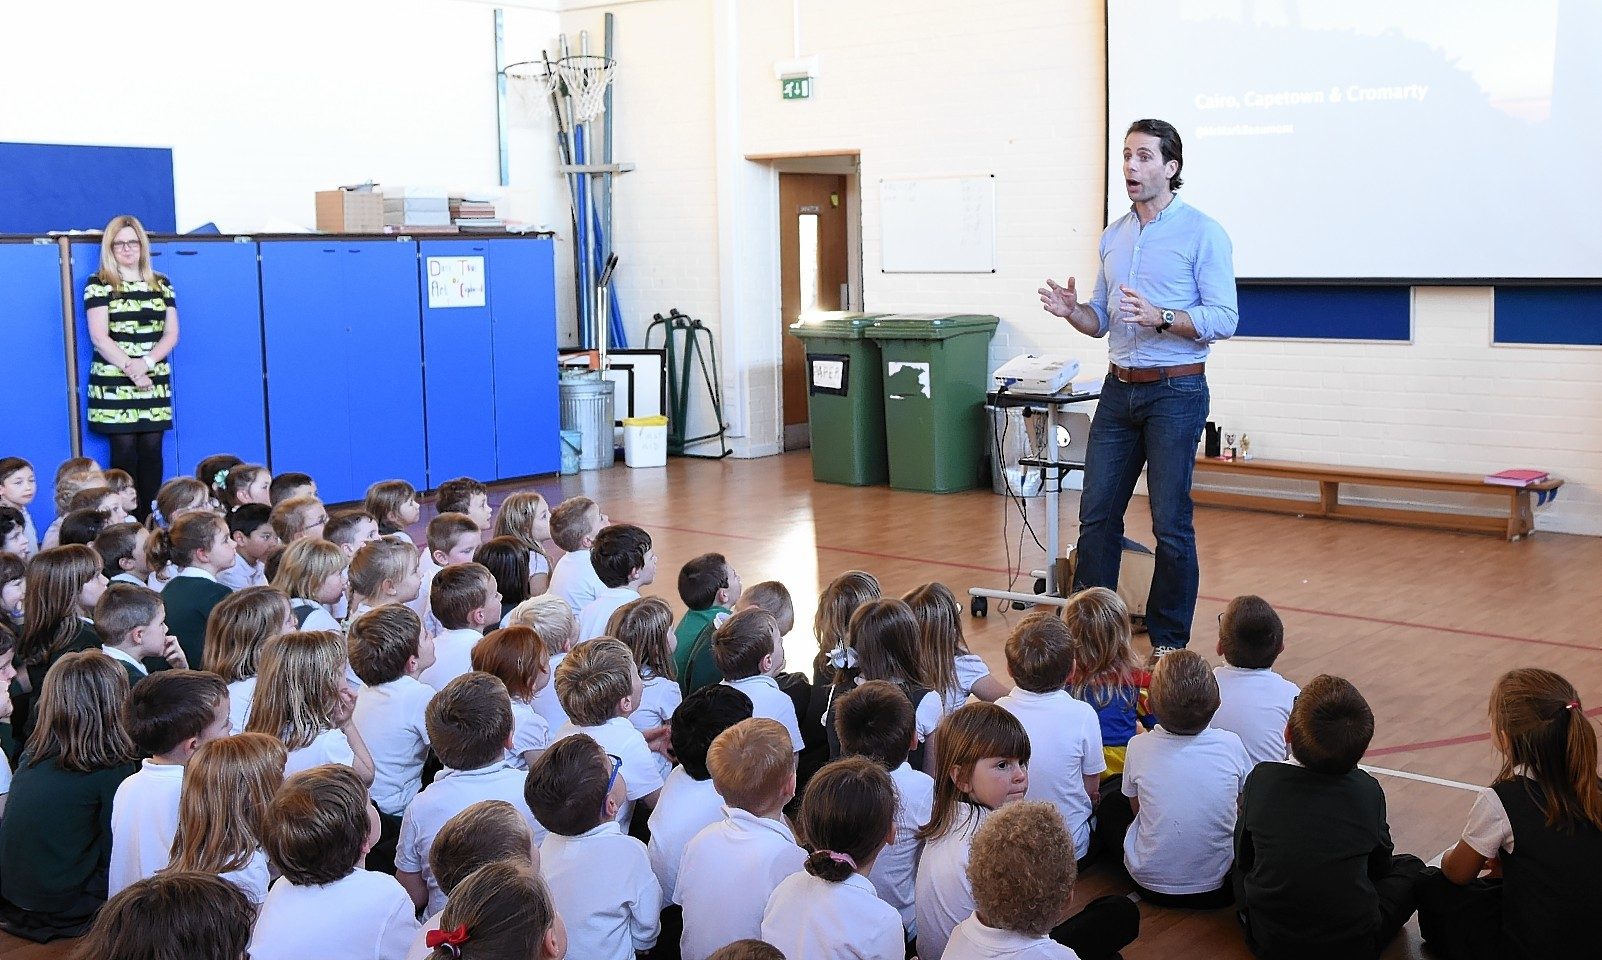 Long distance cyclist Mark Beaumont gives an inspirational talk to pupils at Gordon Primary School, Huntly.